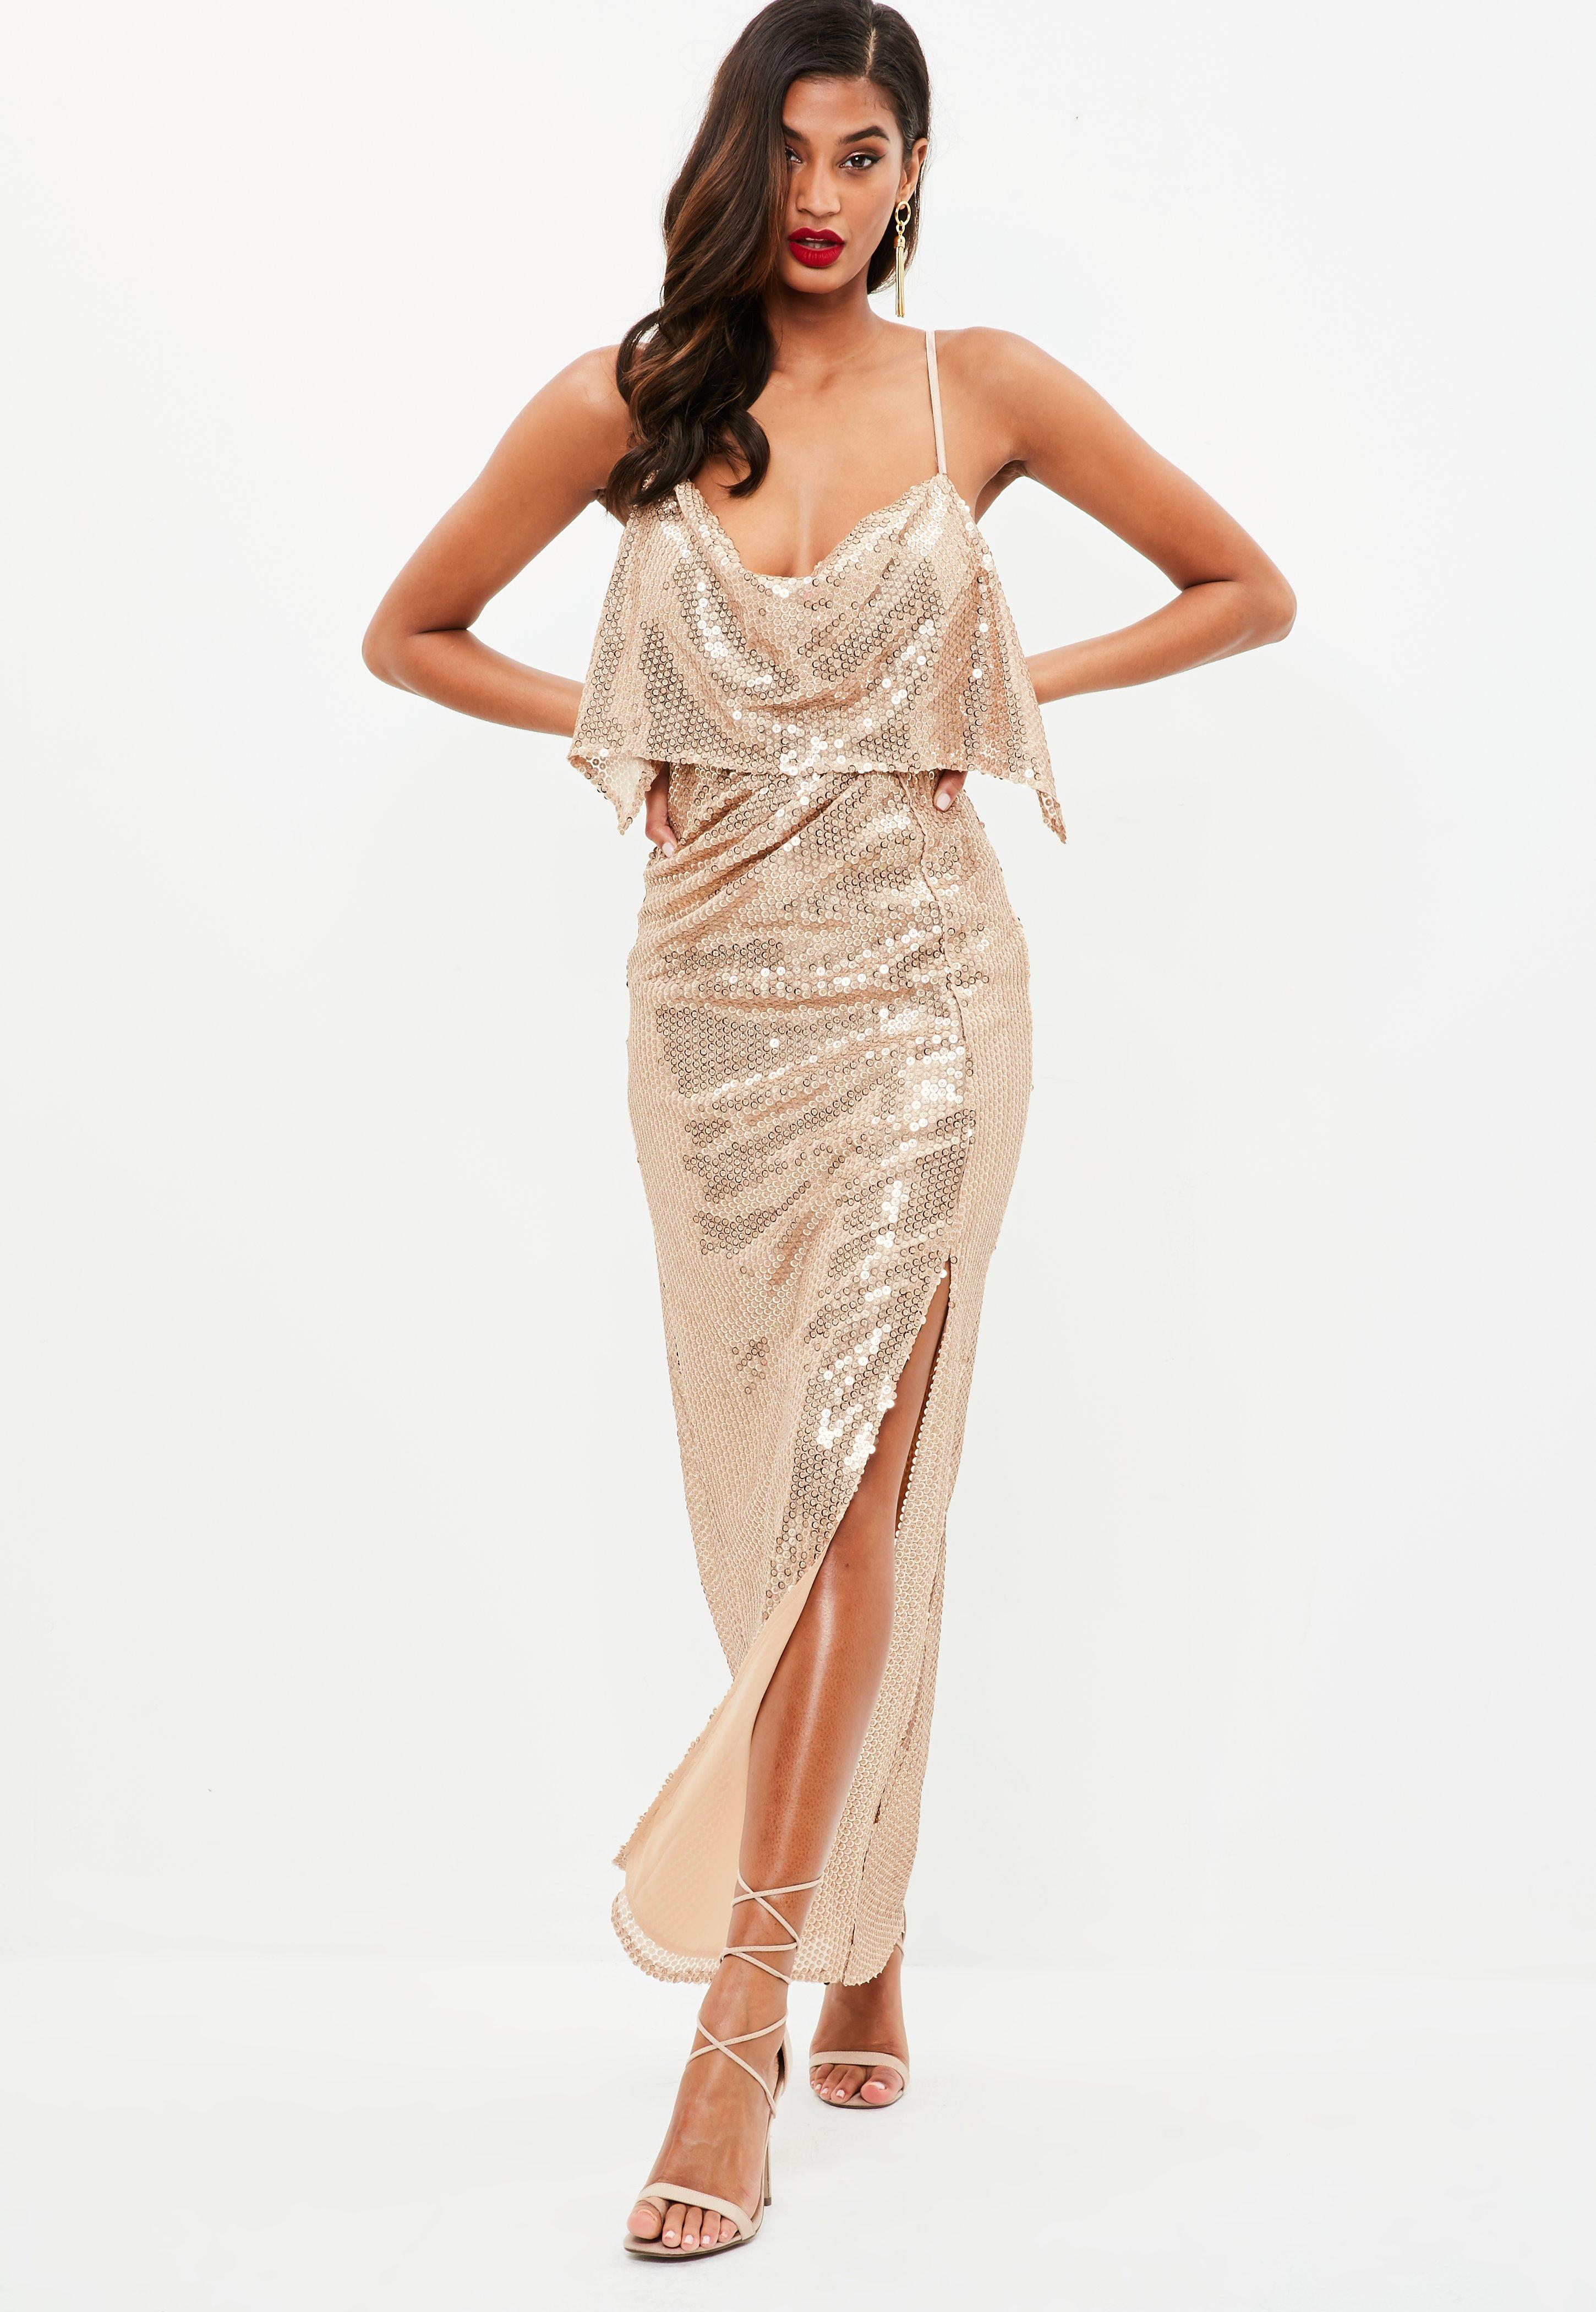 Gold dress with black shoes